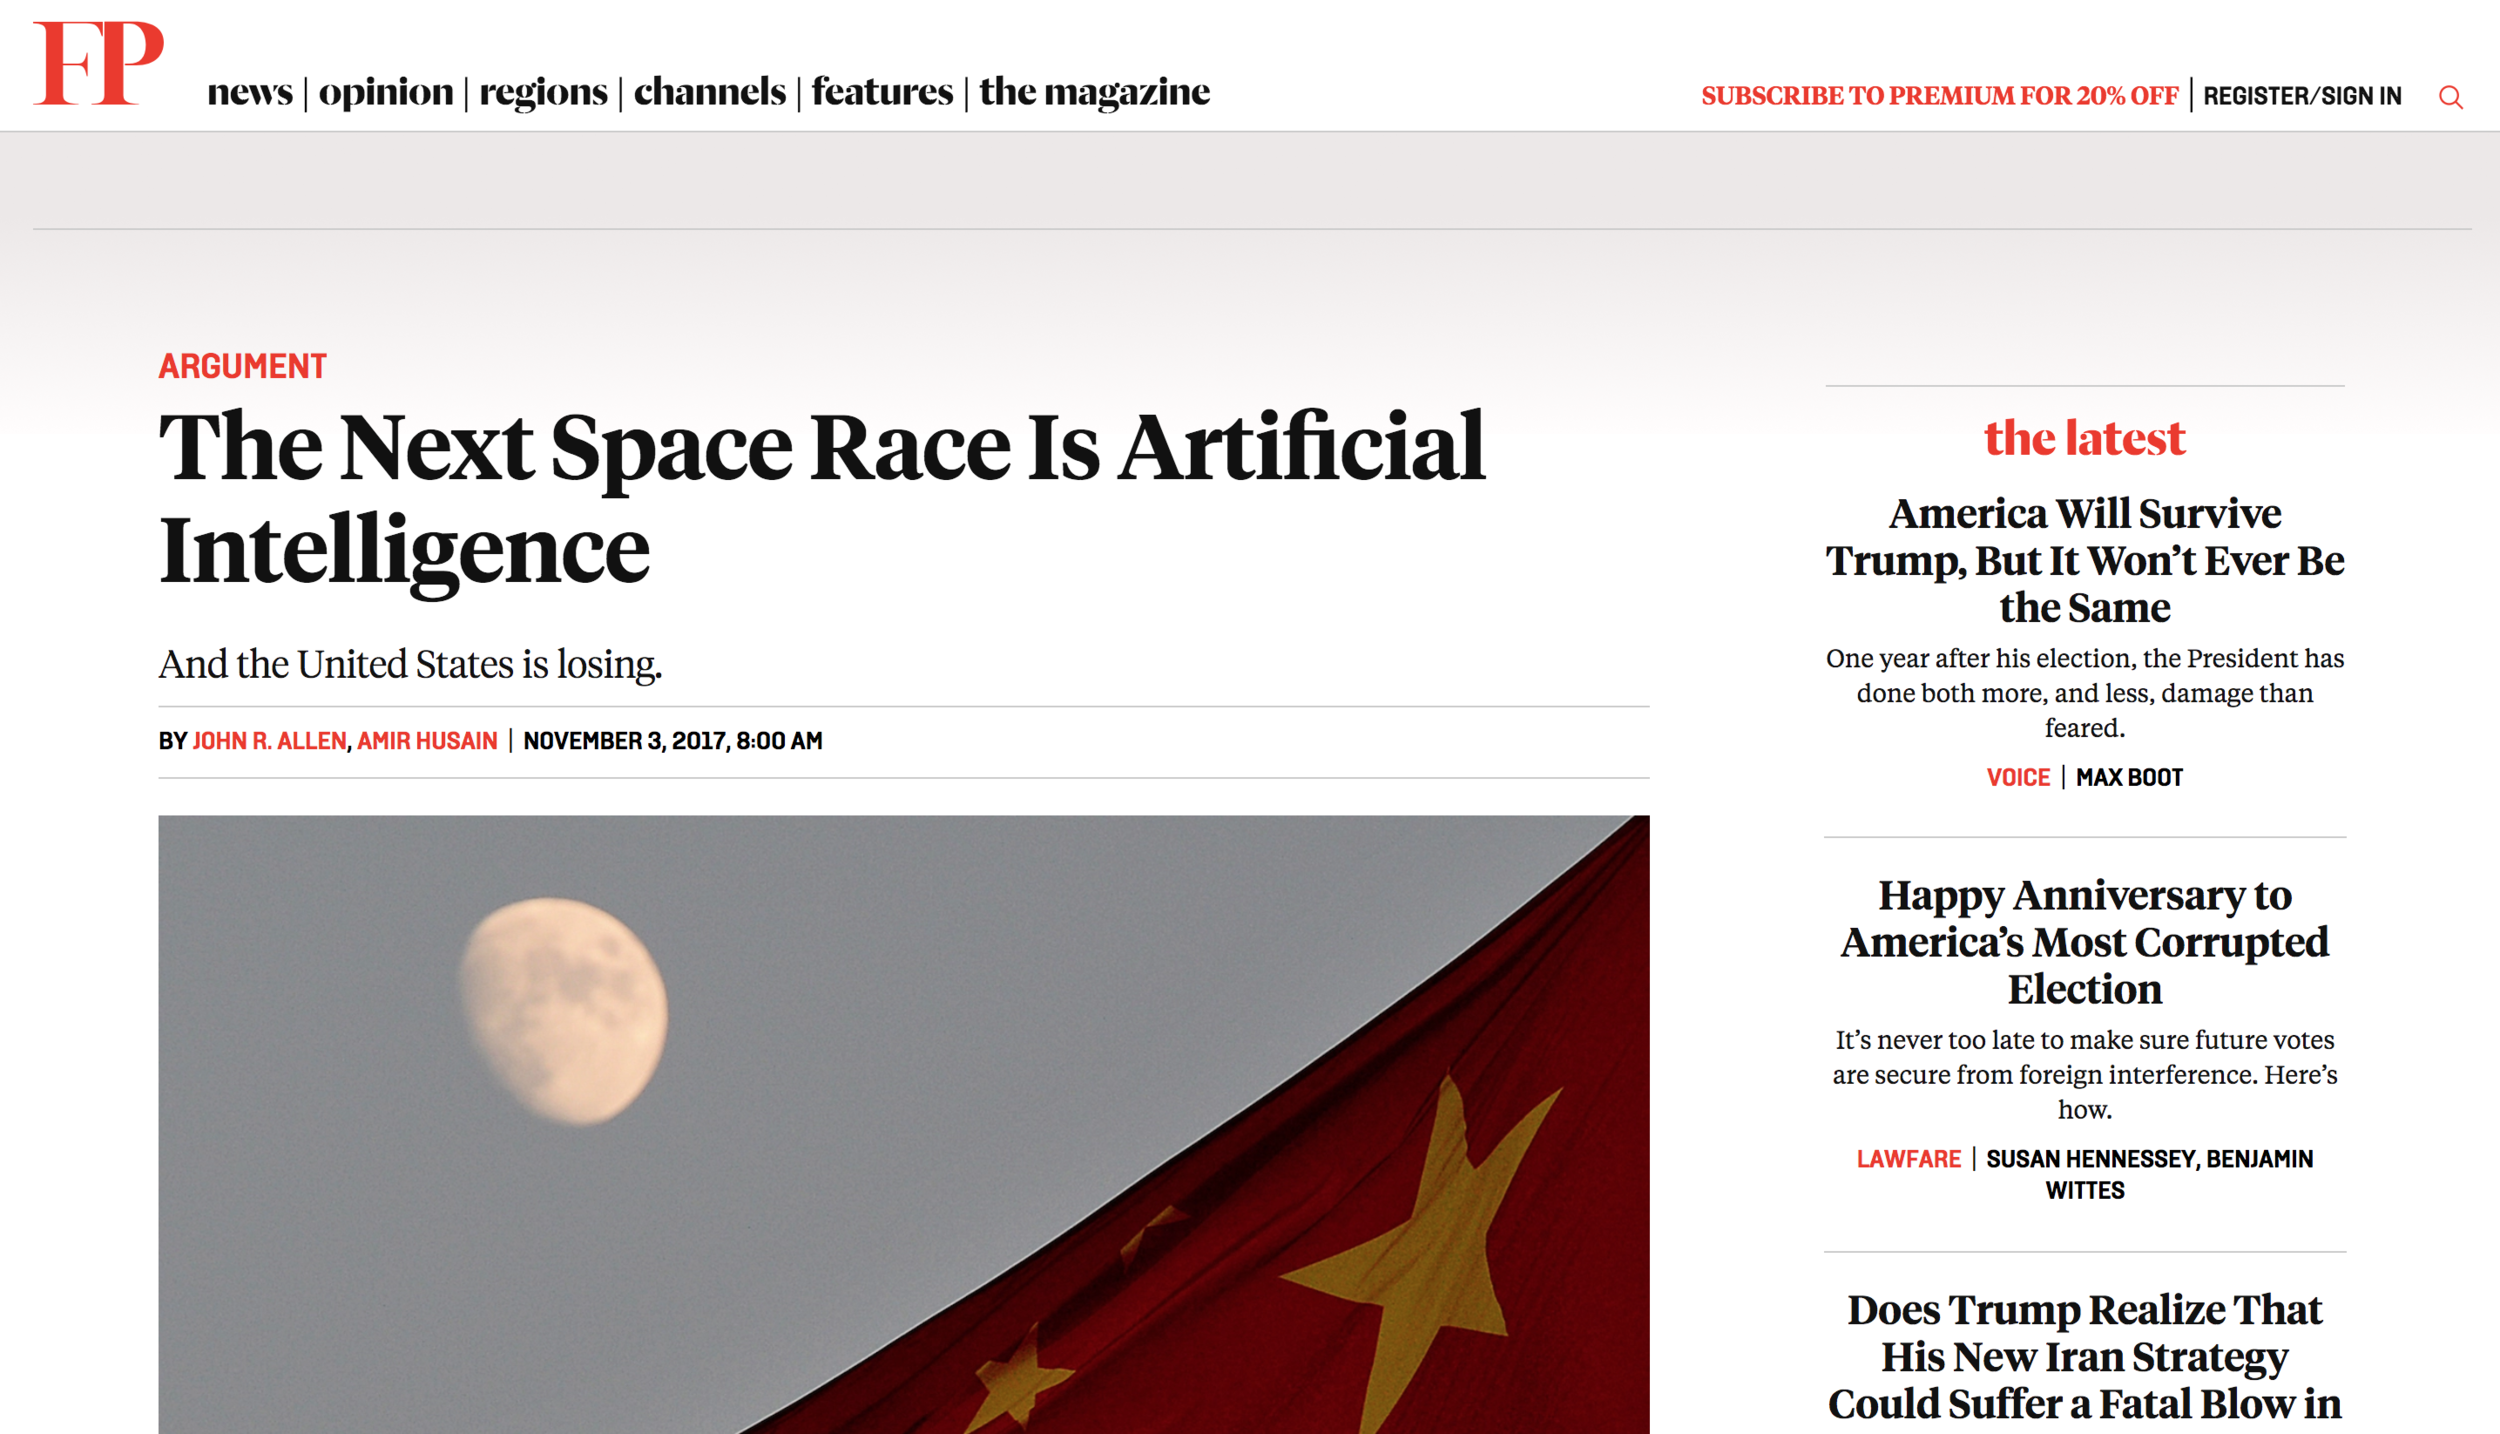 artificial-intelligence-is-the-next-space-race.png